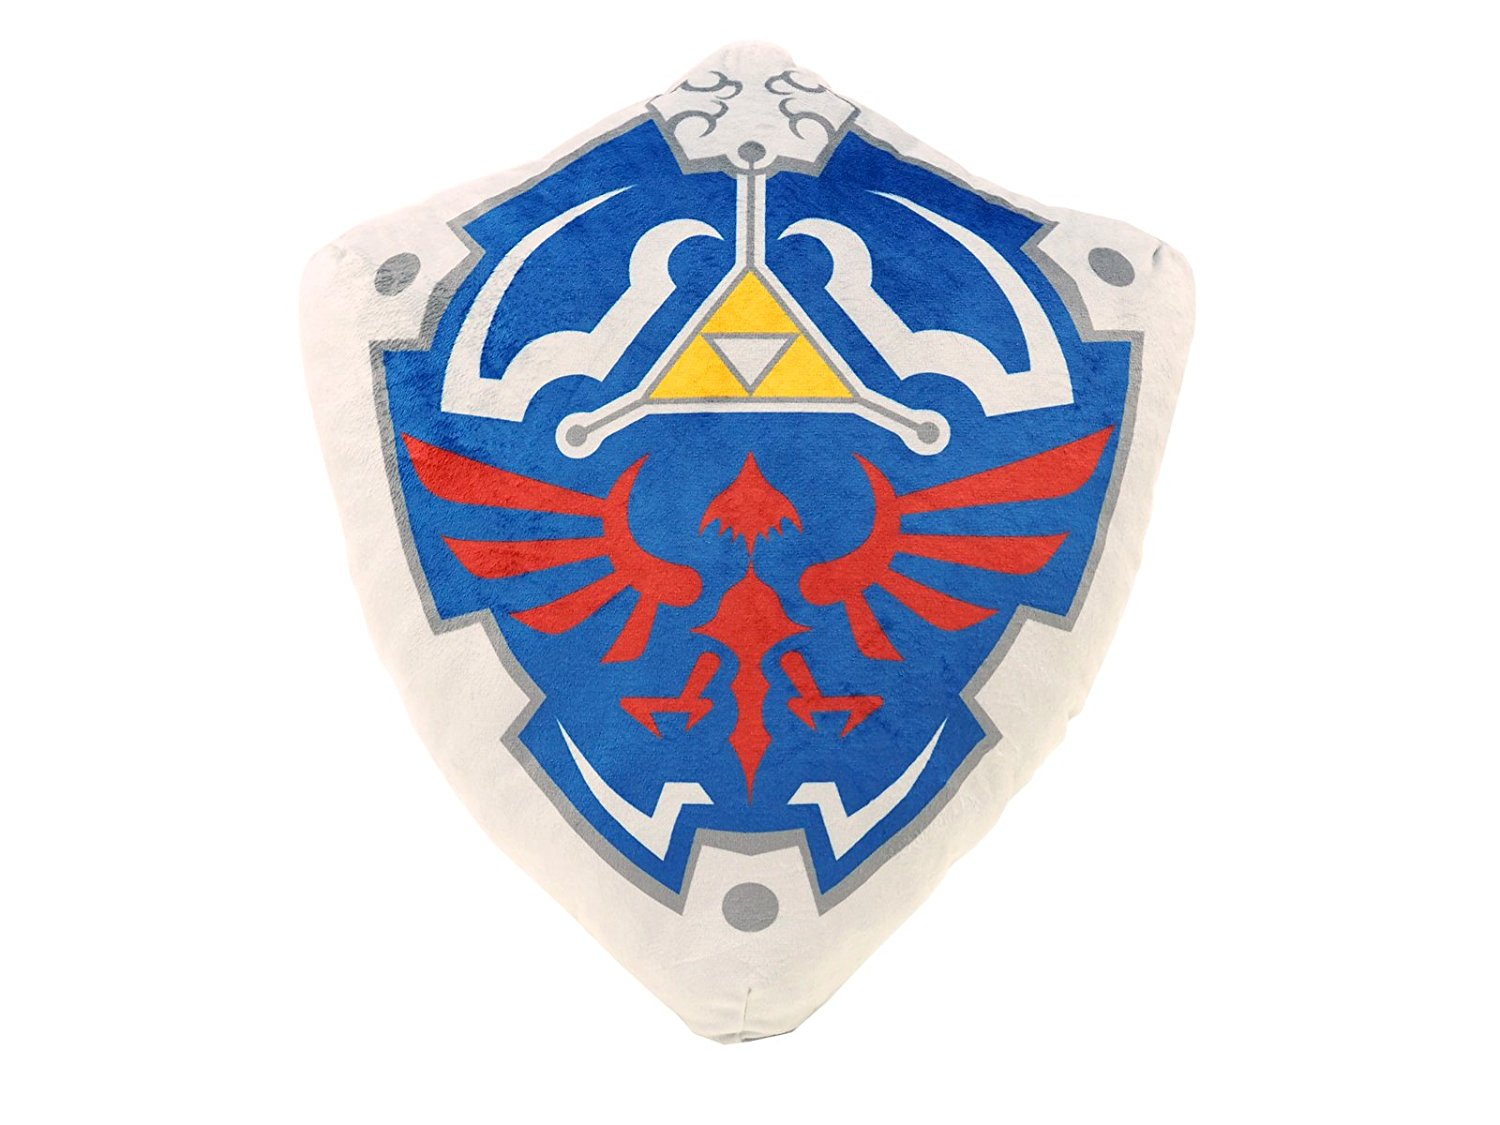 42dff441d56d Get Quotations · Little Buddy The Legend of Zelda Stuffed Plush - 1380 -  Hylian Shield Cushion